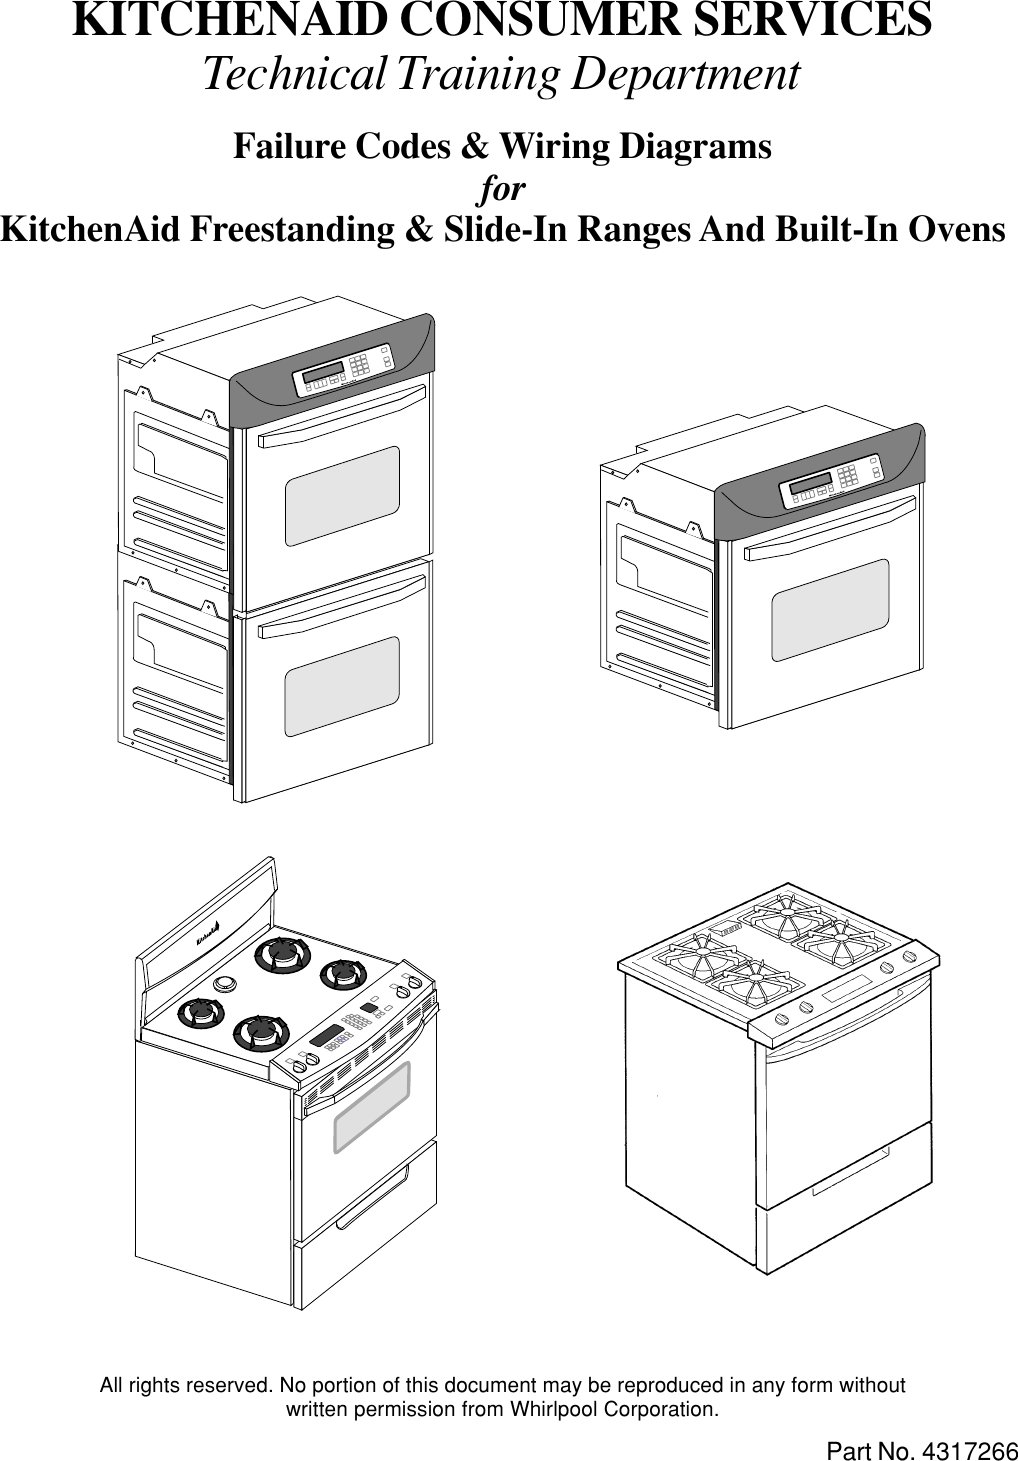 KitchenAid 4317266 FC Book User Manual To The 17c09e98